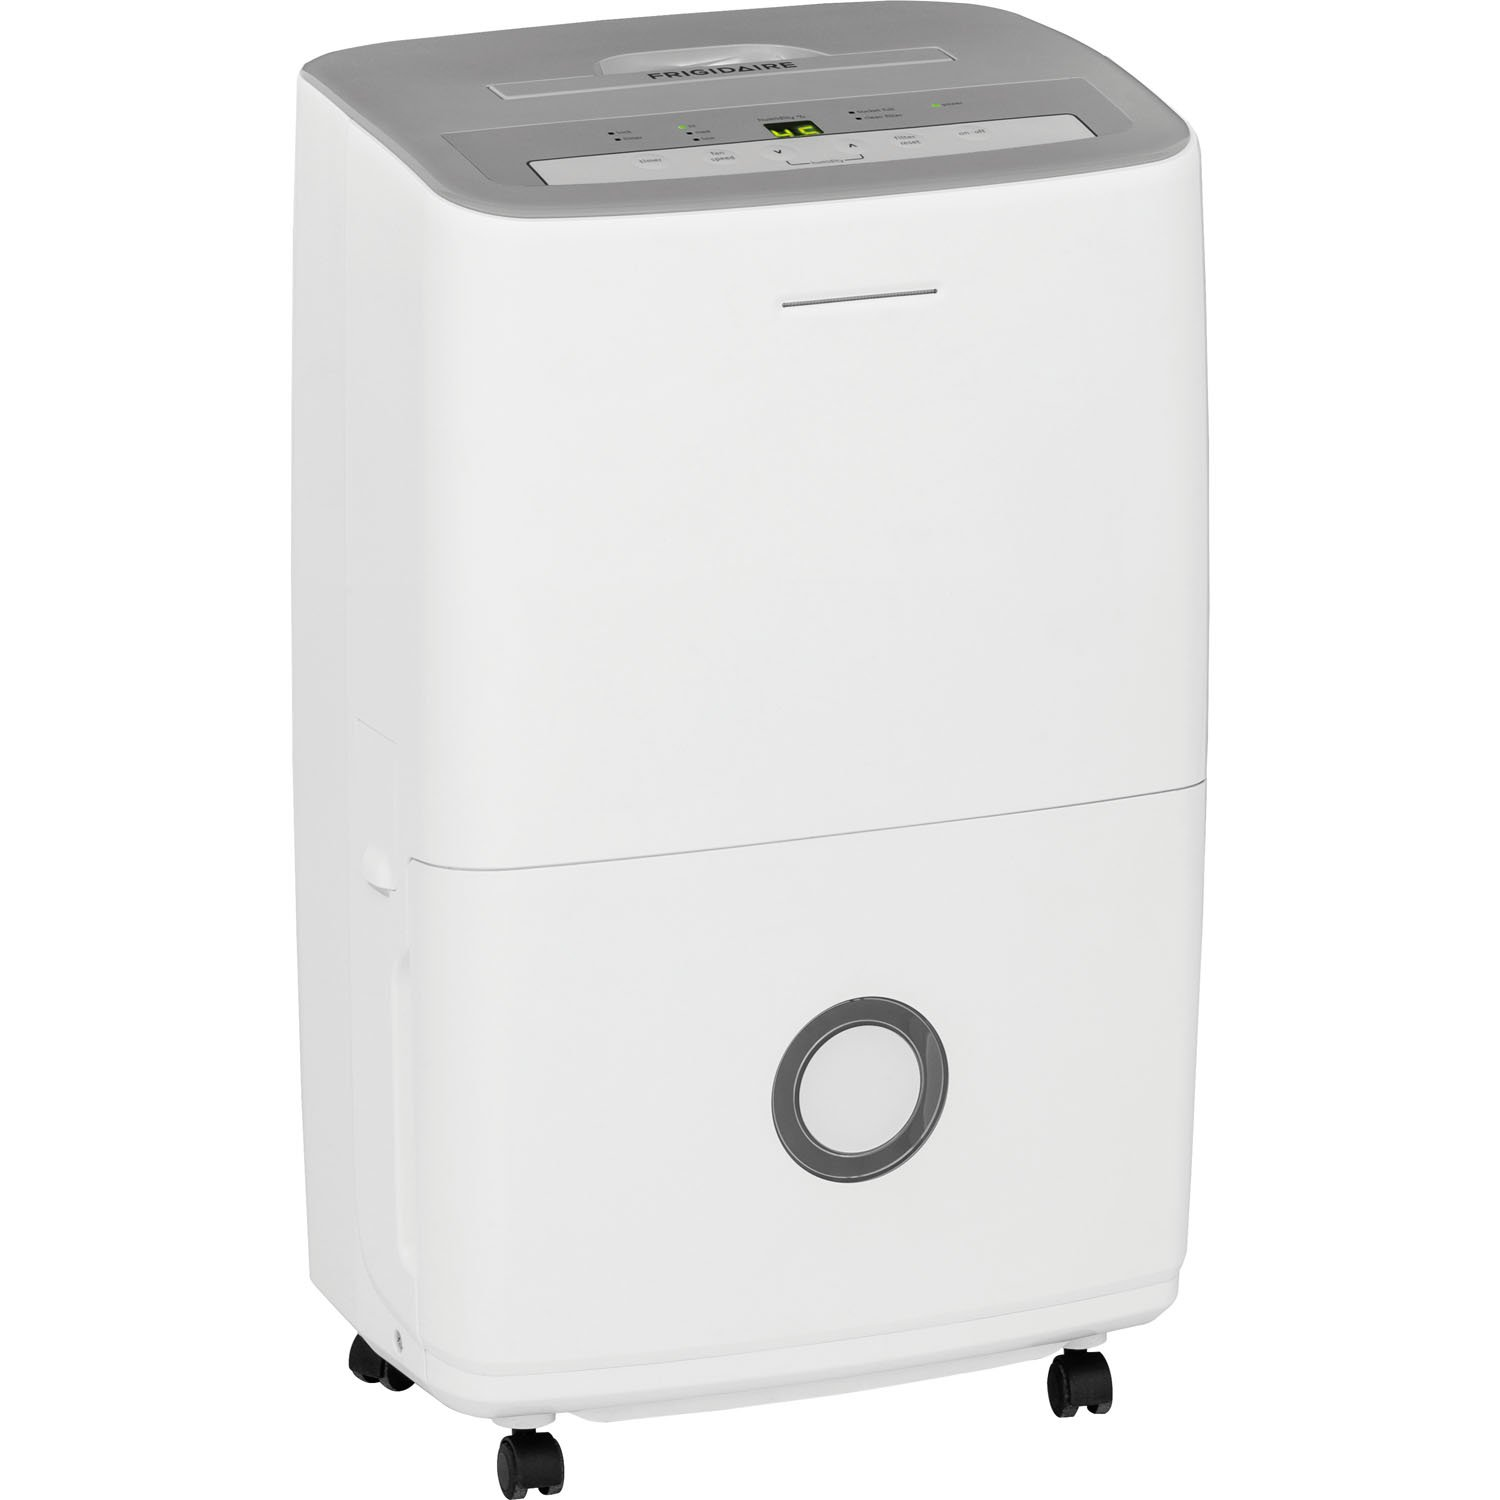 70-Pint Dehumidifier with Effortless Humidity Control, White by Frigidaire (Image #9)